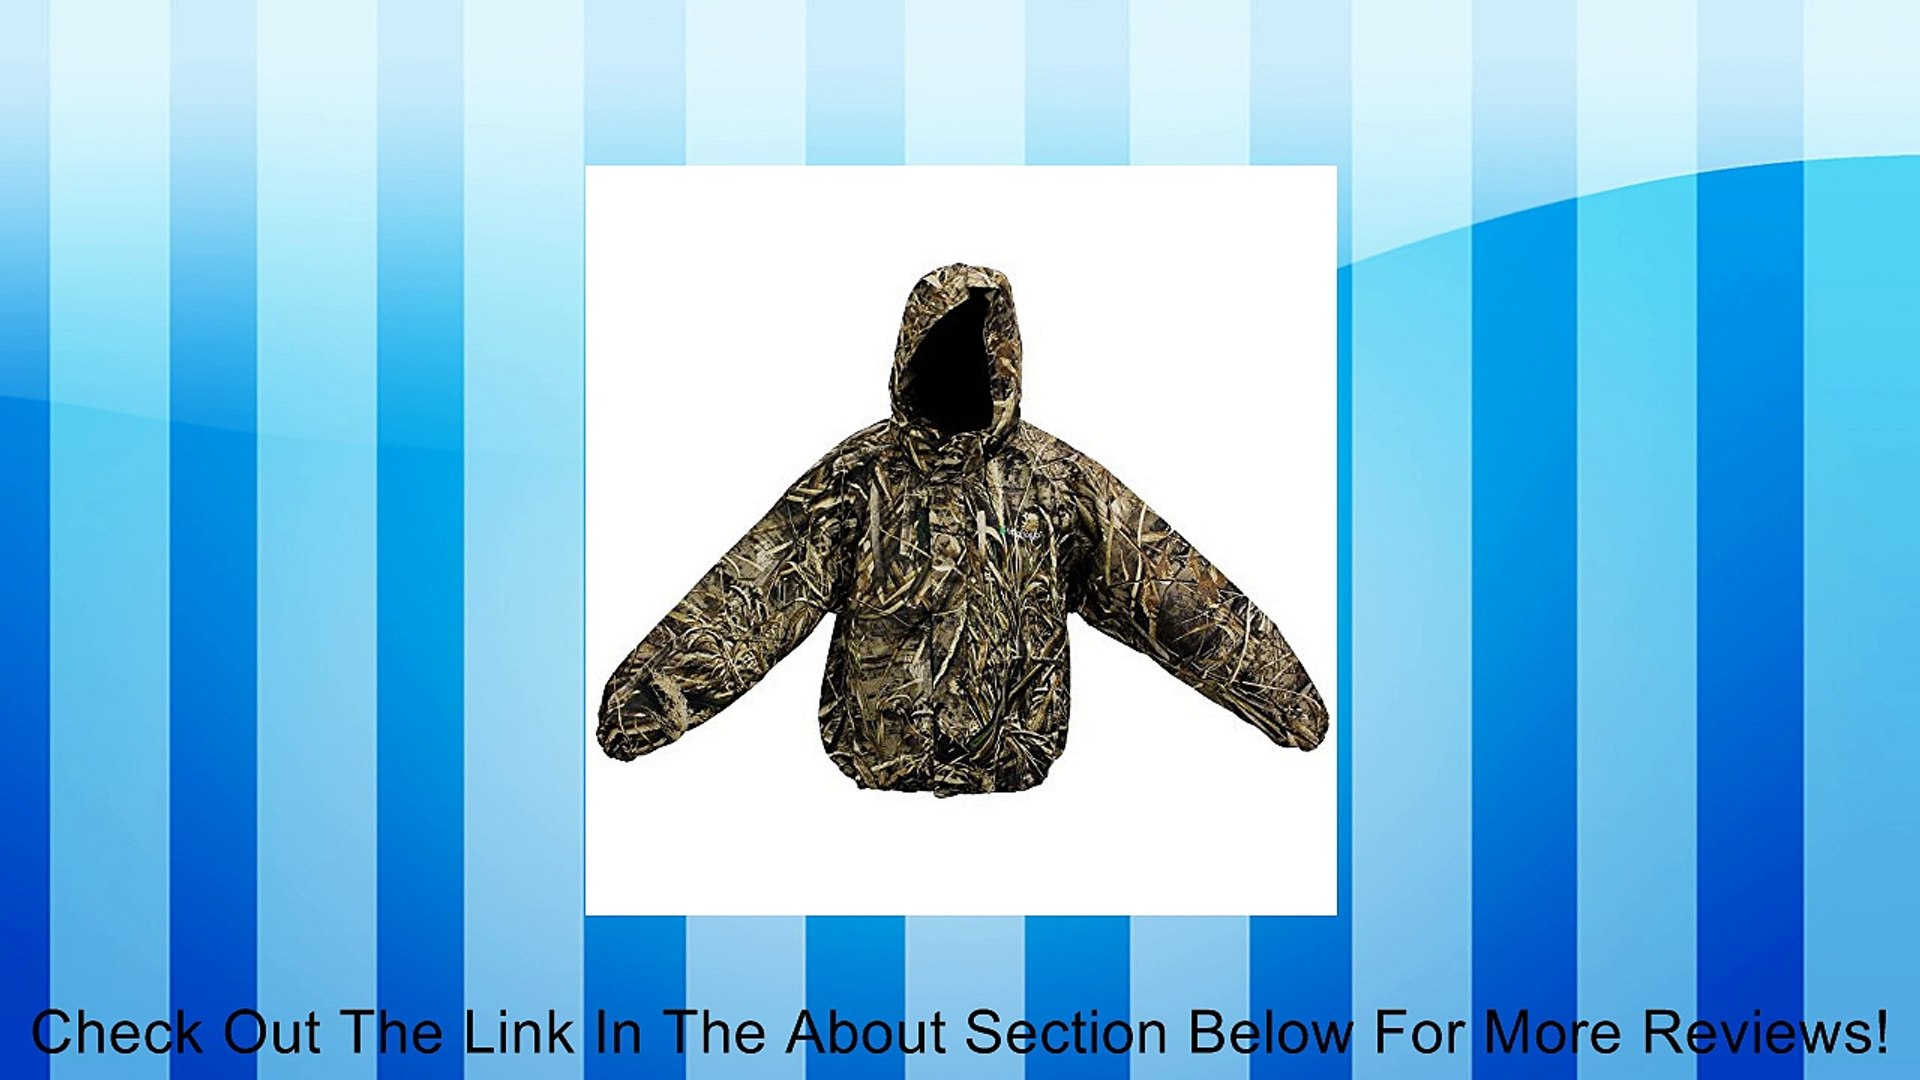 Frogg Toggs Pro Action Camo Jacket, Small, Realtree Max 5 Review